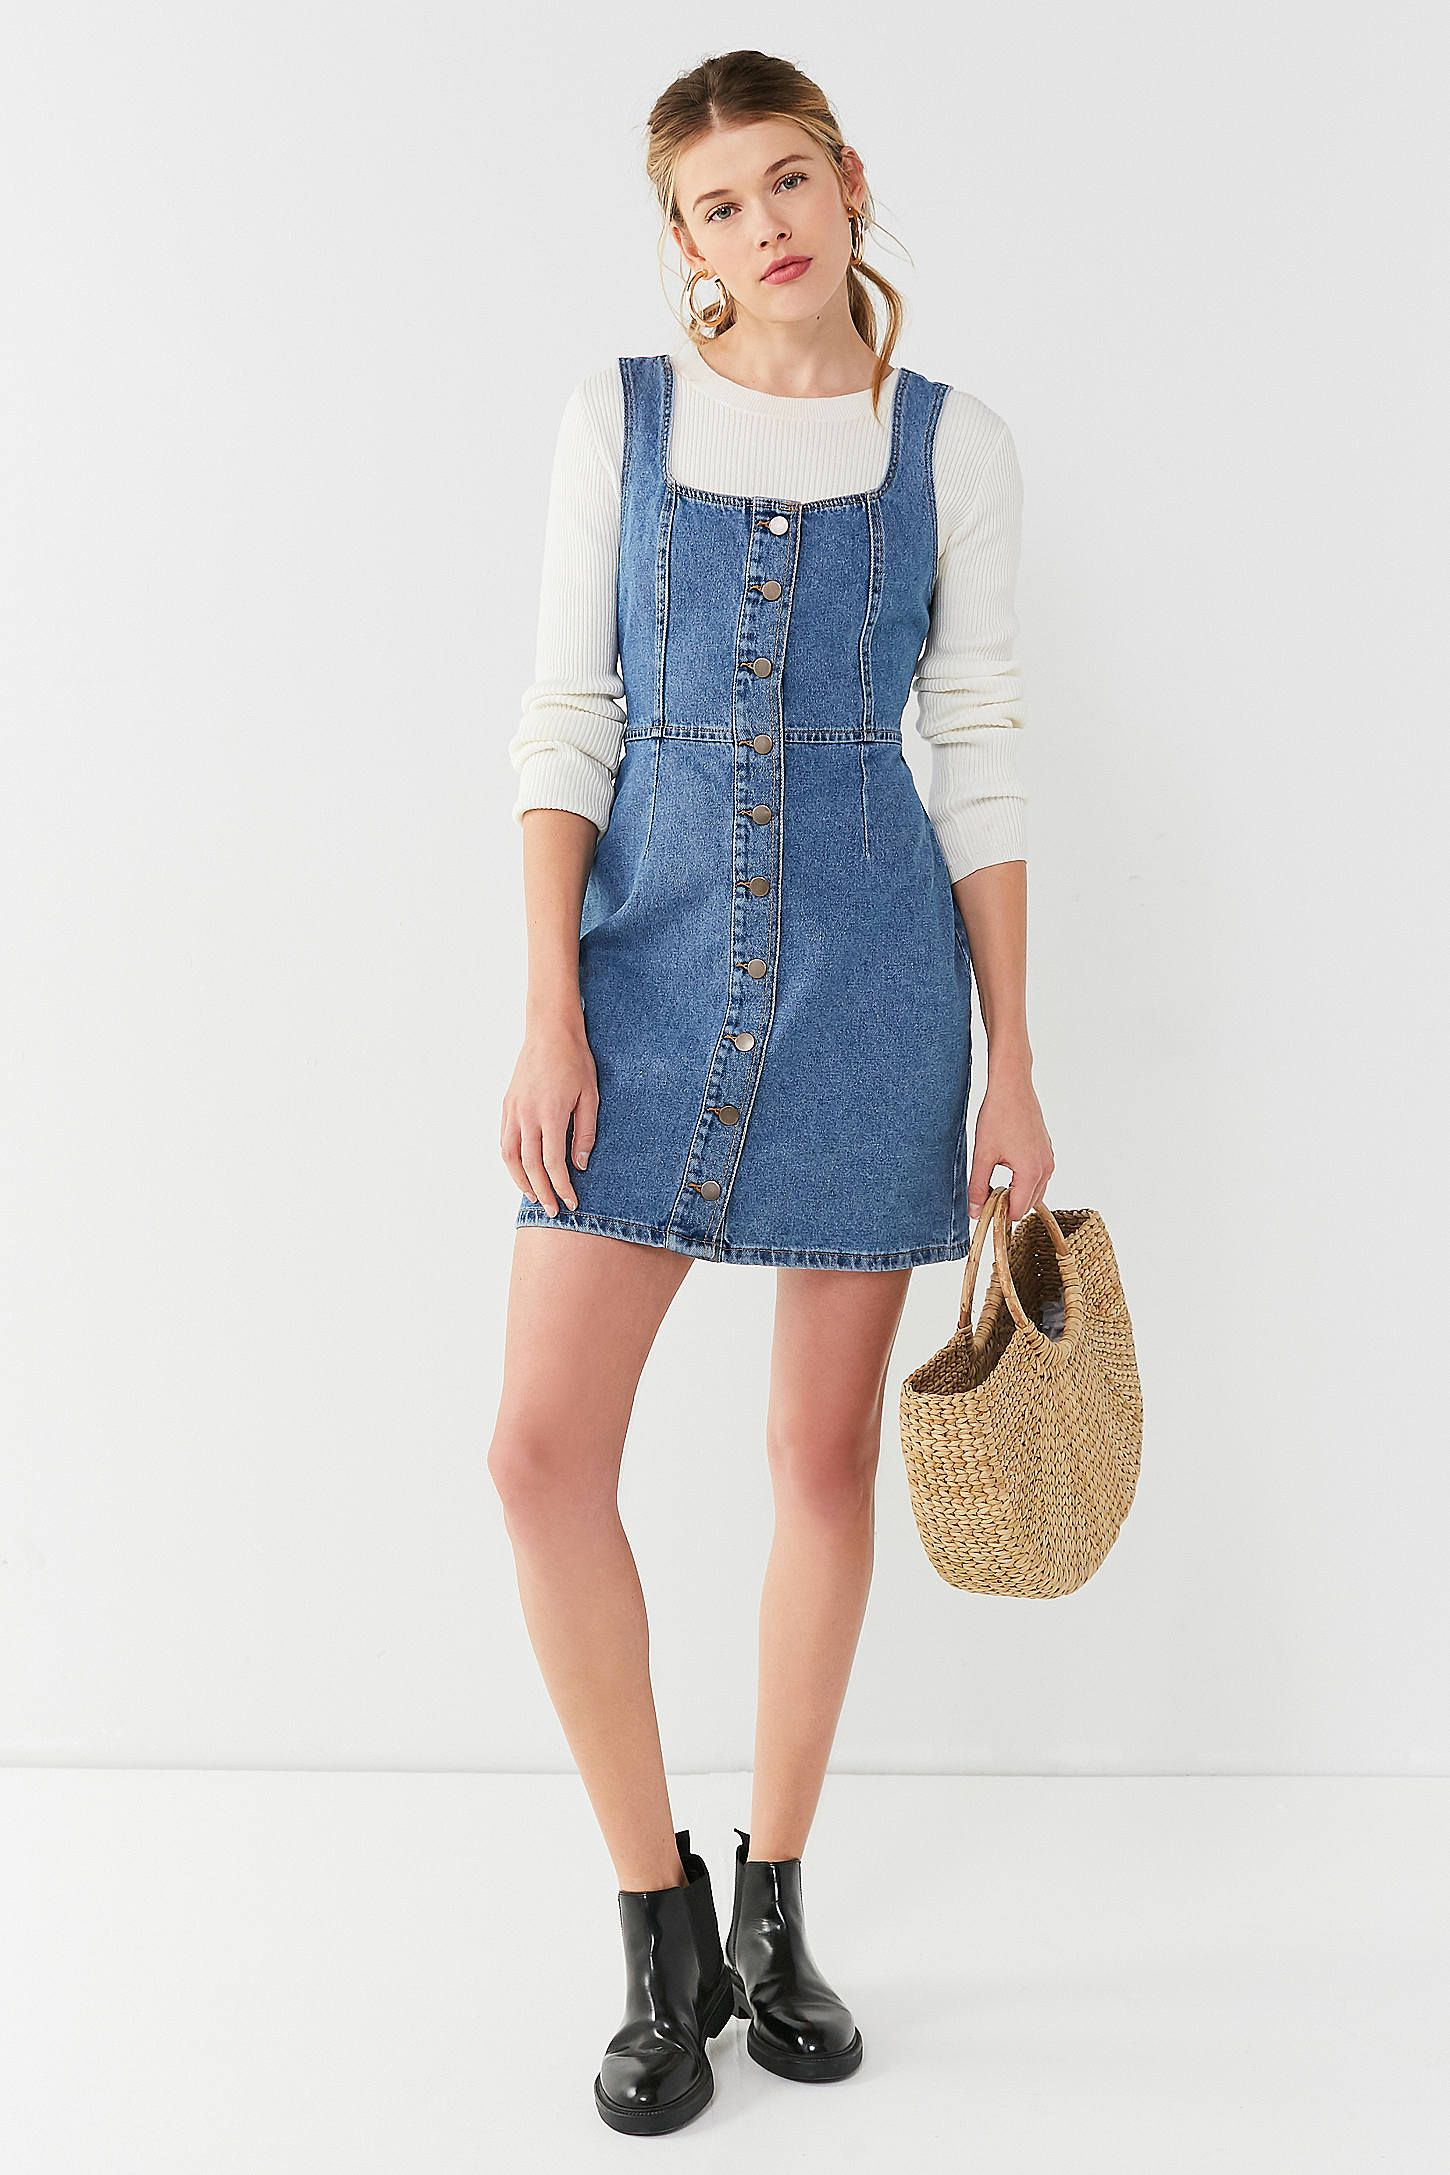 a0472bcc10 Shop UO Button-Down Denim Mini Dress at Urban Outfitters today. We carry  all the latest styles, colors and brands for you to choose from right here.